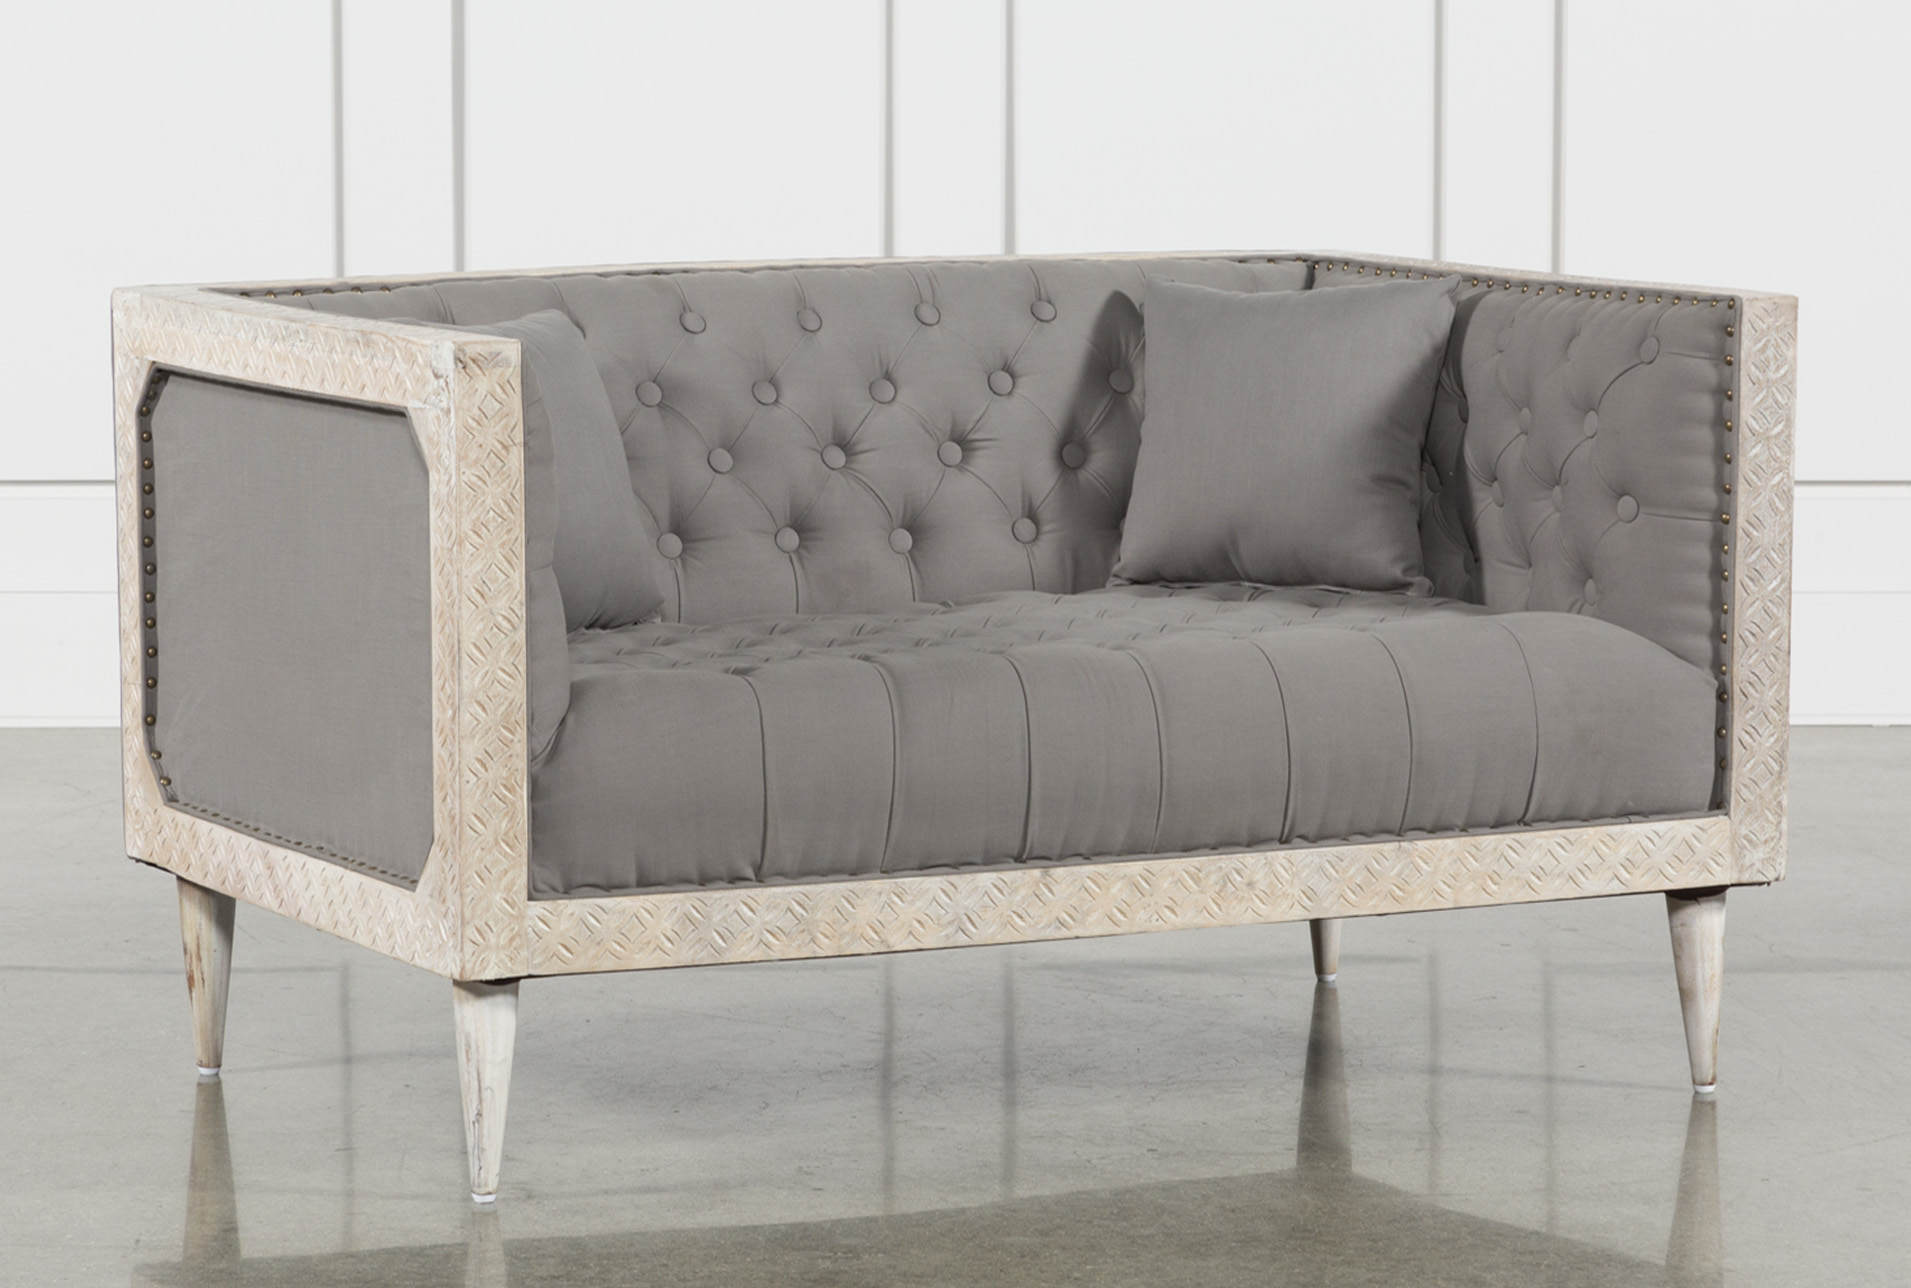 Attrayant Oversized Grey Tufted Chair With White Wash   360 Elements